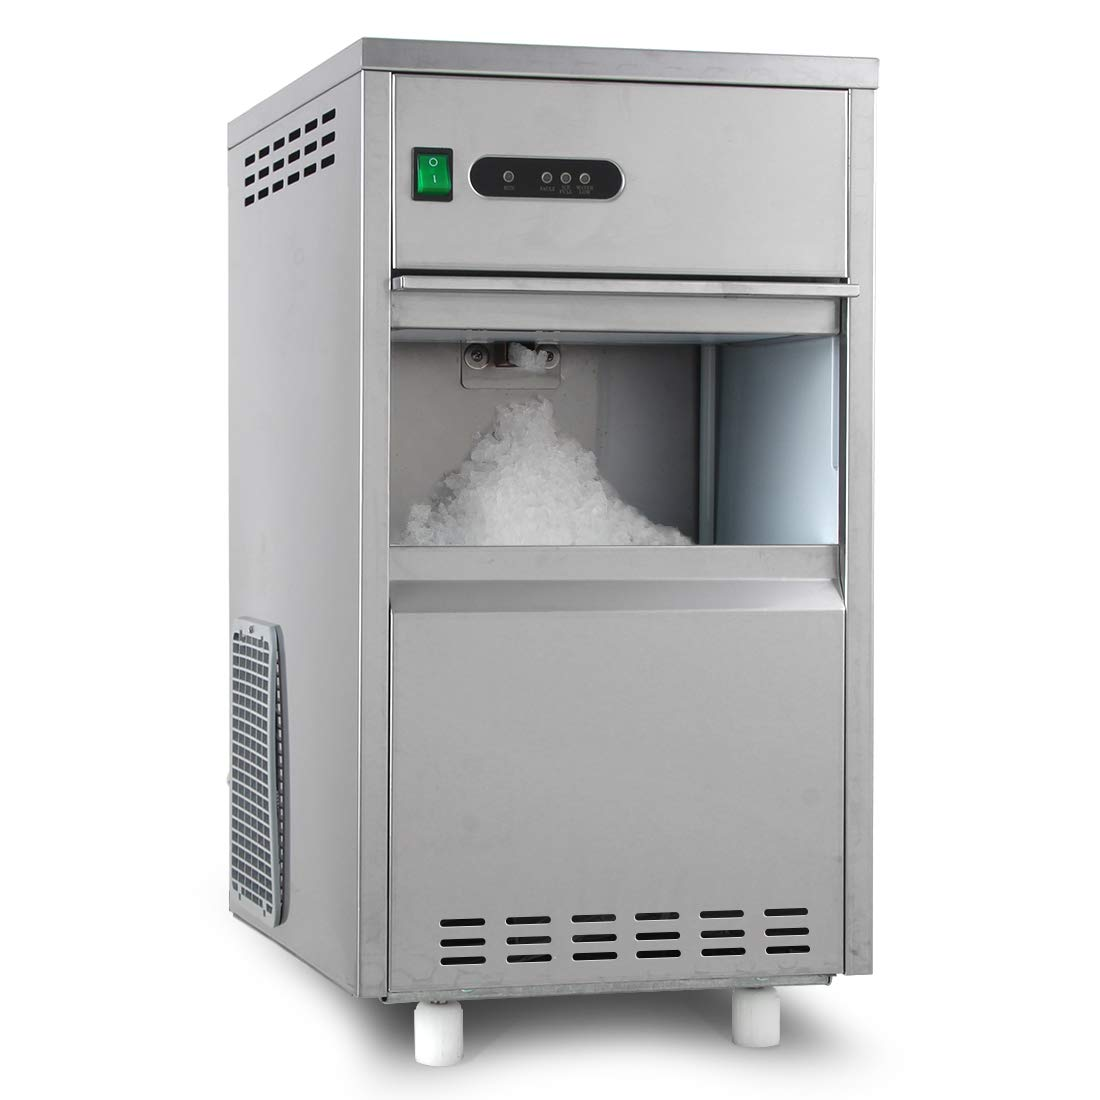 Snow Ice Maker Machine Crystal Clear Flake Automatic Crusher Making 44 Lbs/24 Hours,11 Lbs Storage Shaver AZICMA002045